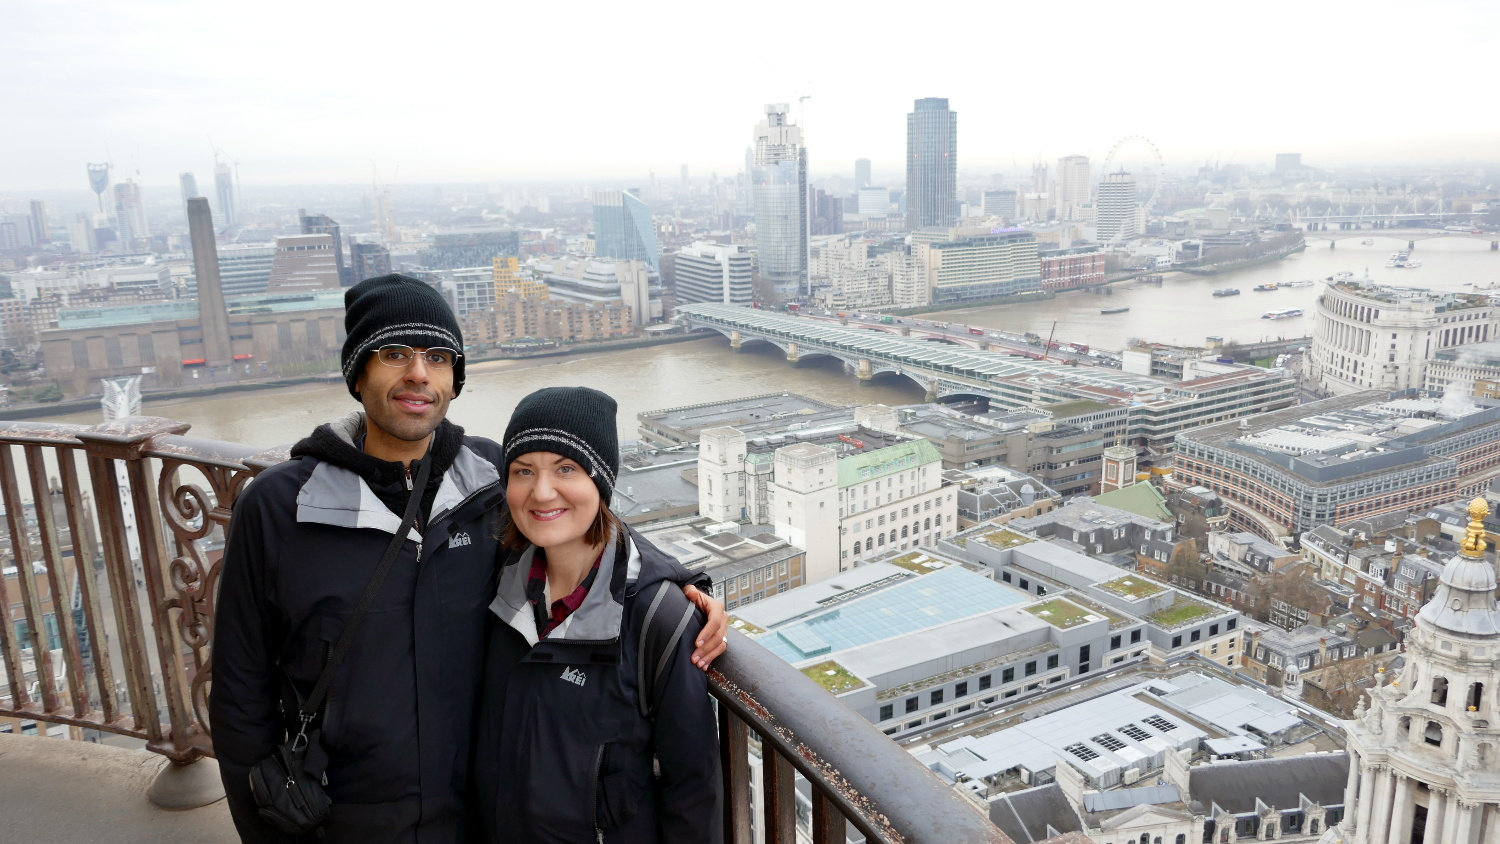 Us enjoying the view from the dome of St. Paul's Cathedral! It's a trek to climb up, but worth it!